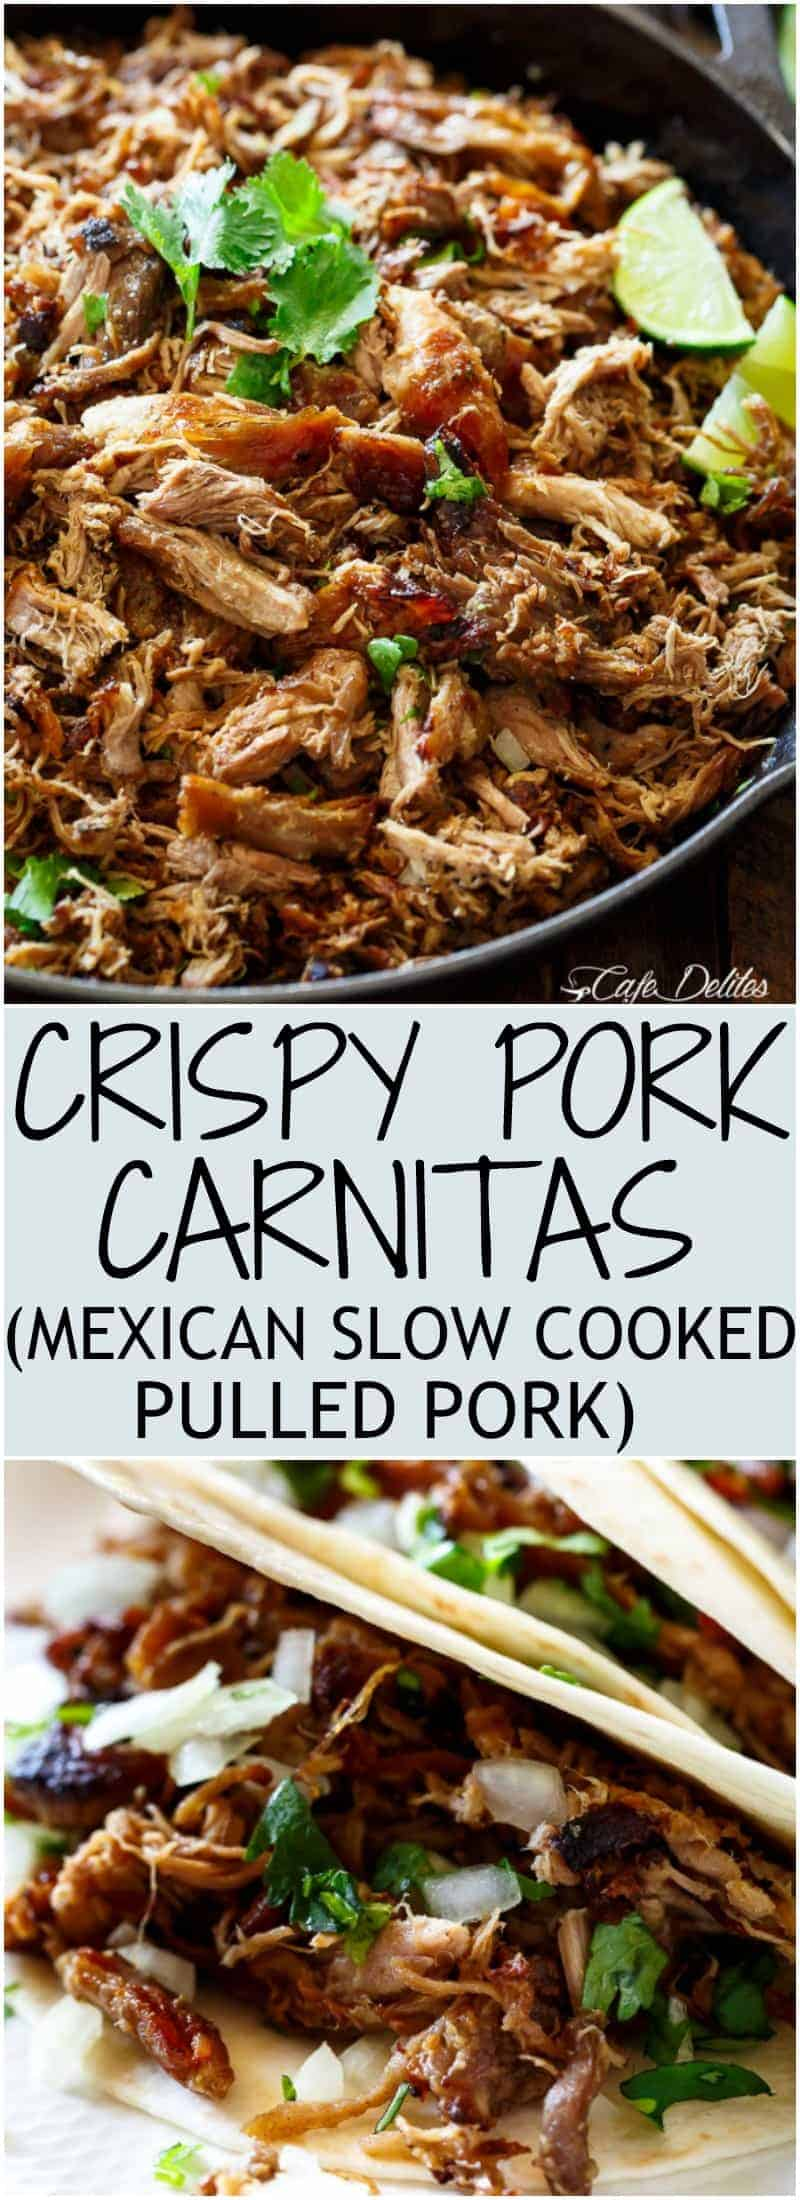 Crispy Pork Carnitas Mexican Slow Cooked Pulled Pork Cafe Delites